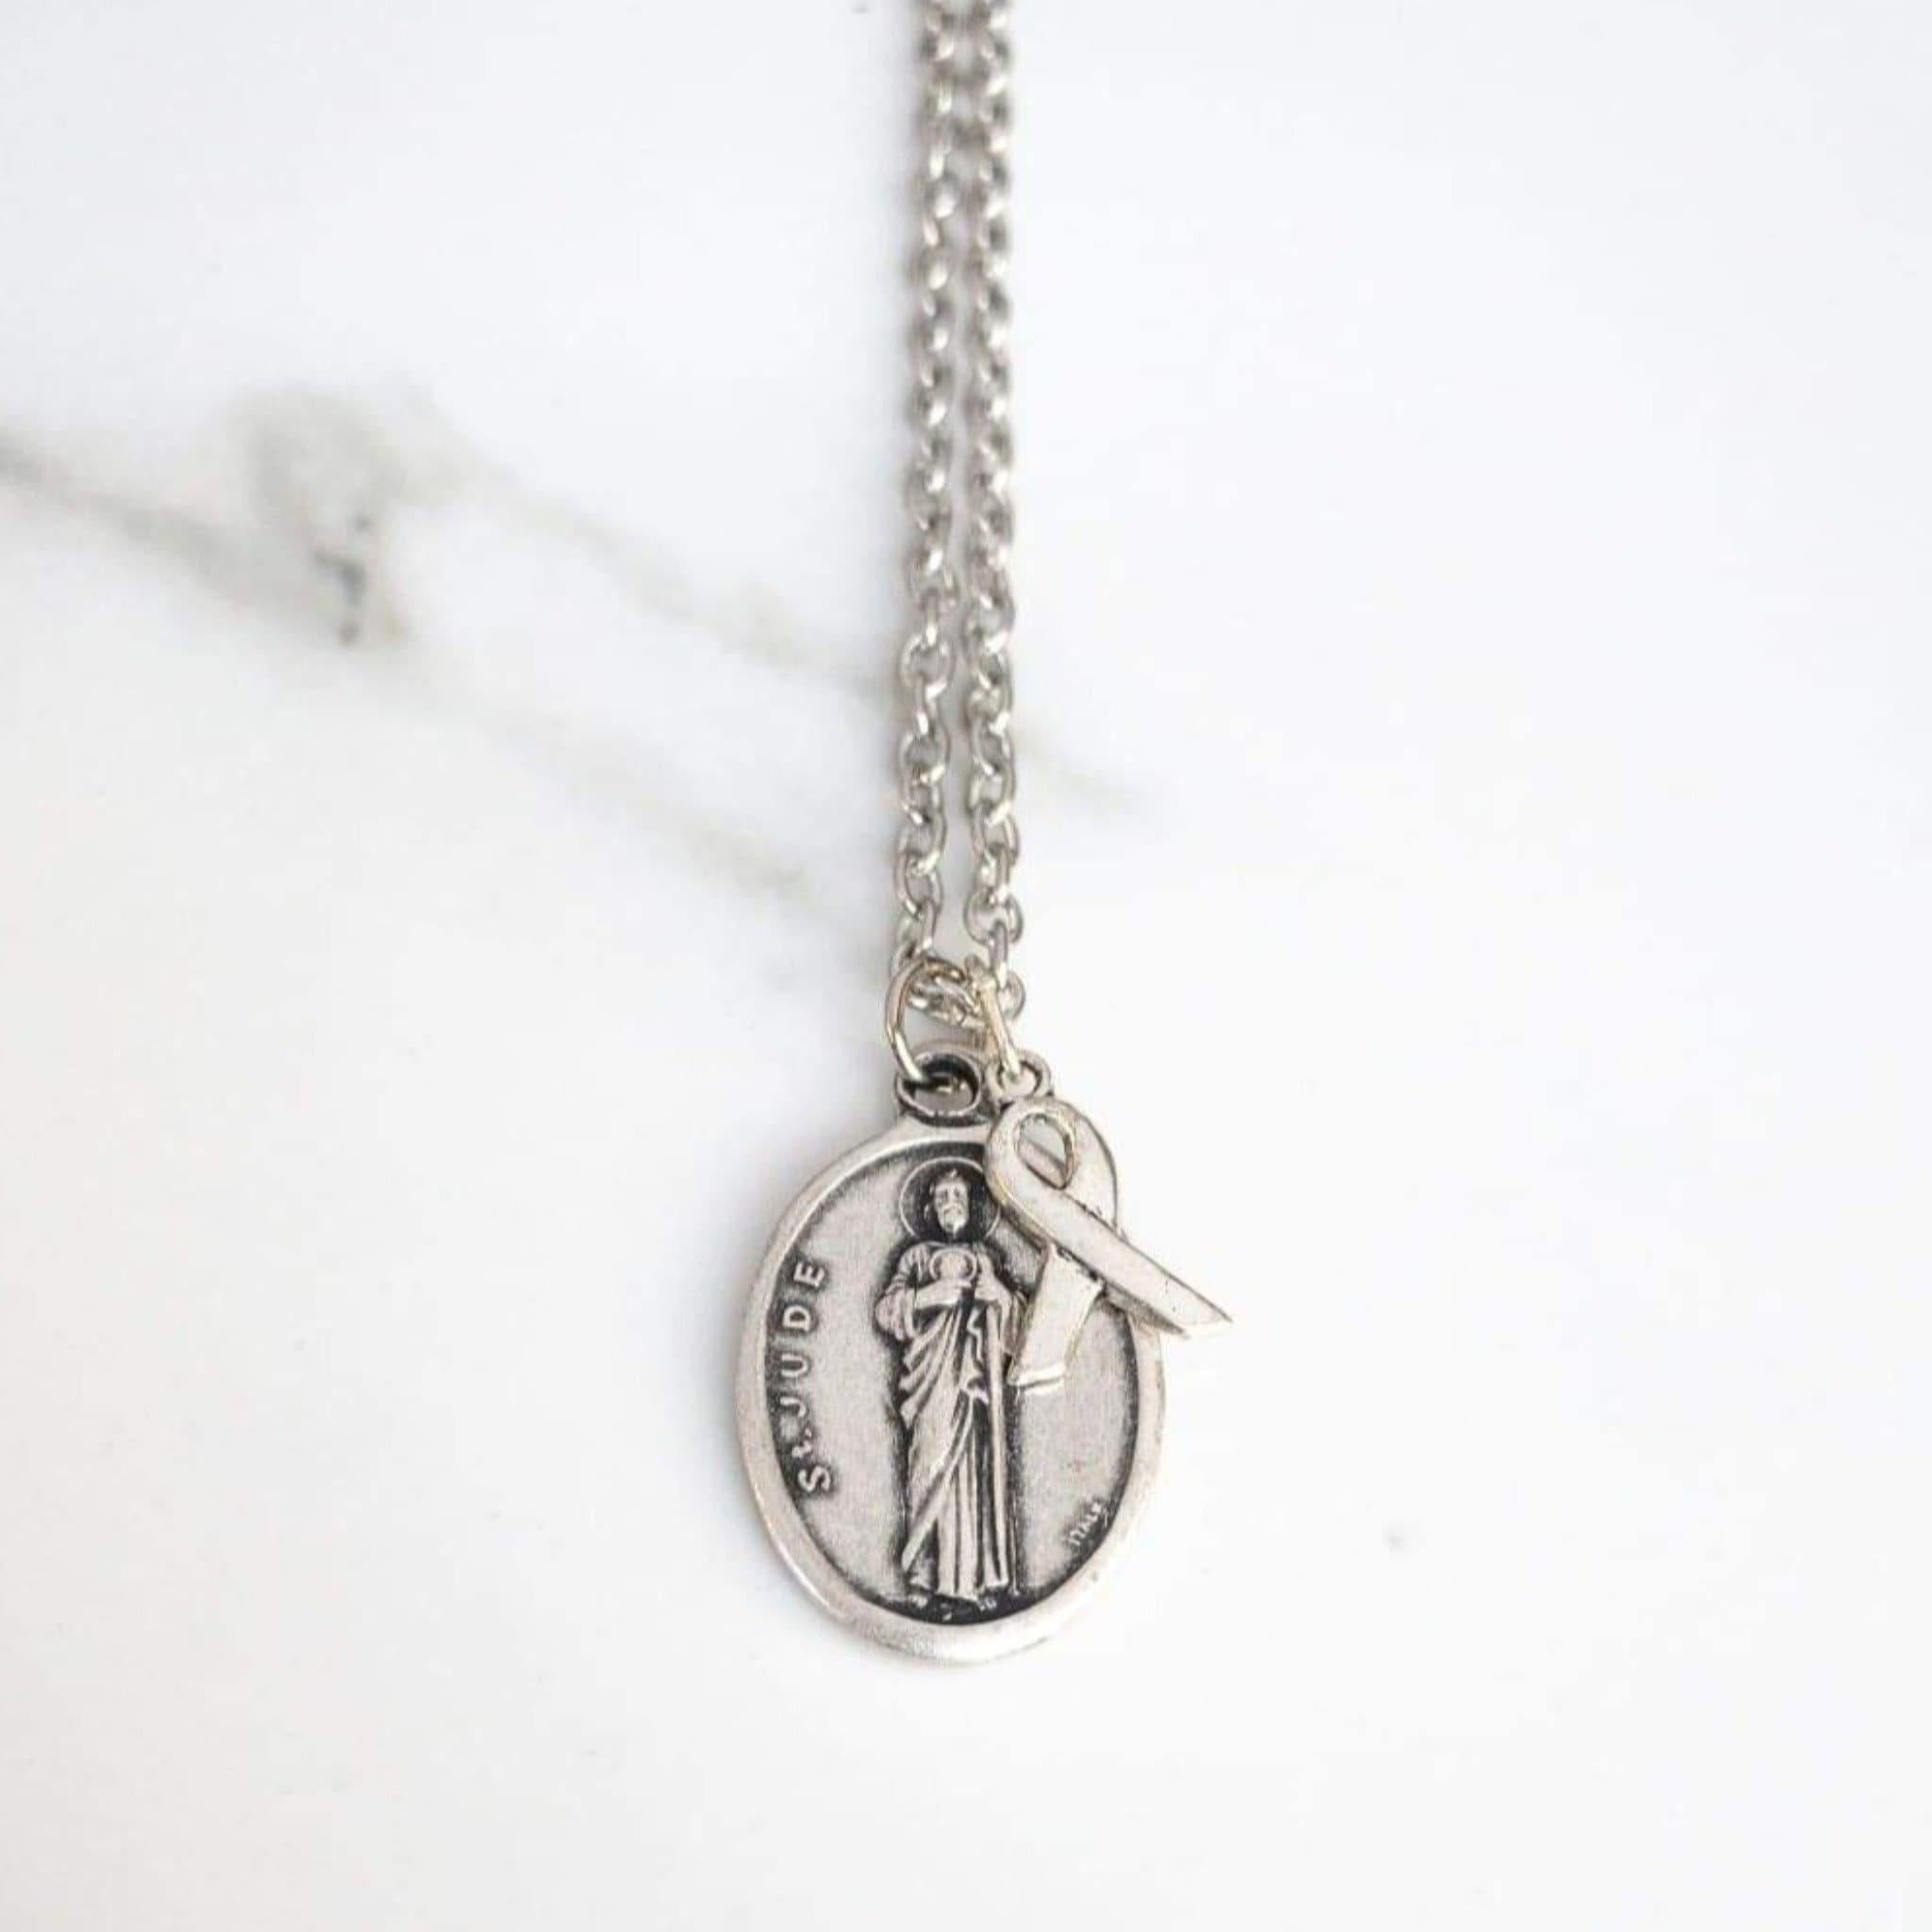 St Jude Necklace - Necklace